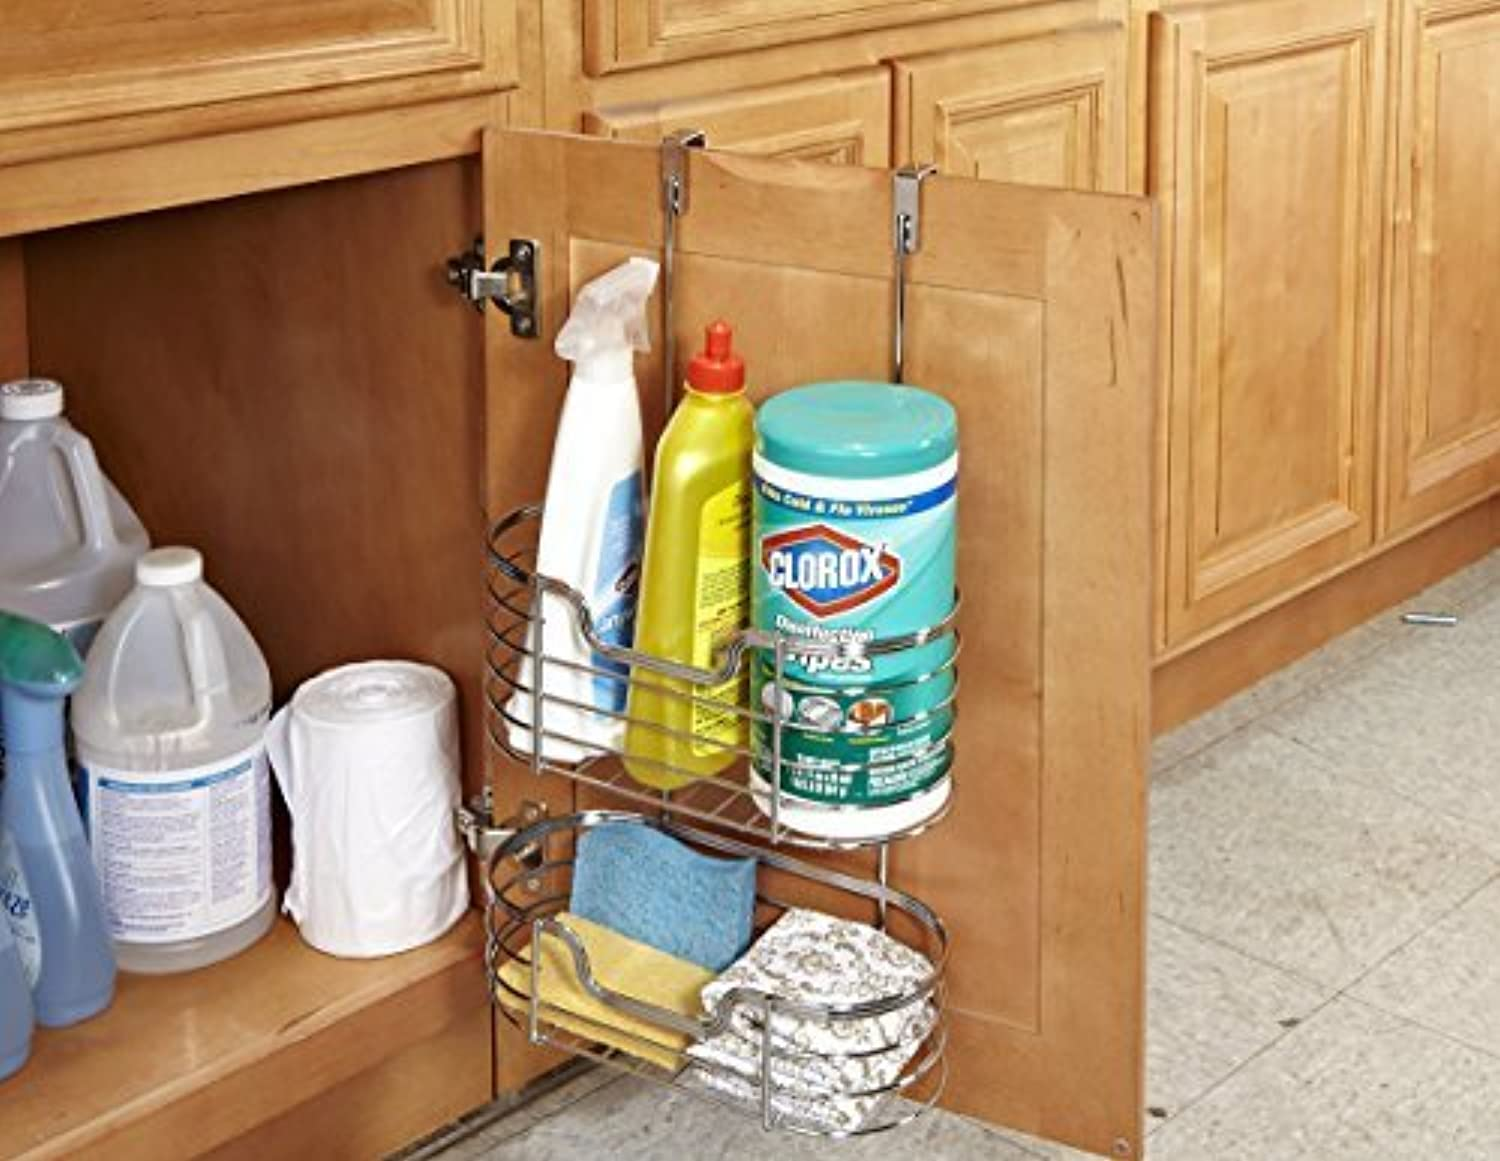 Kitchen Details 2 Tier Cabinet Organizer, Chrome